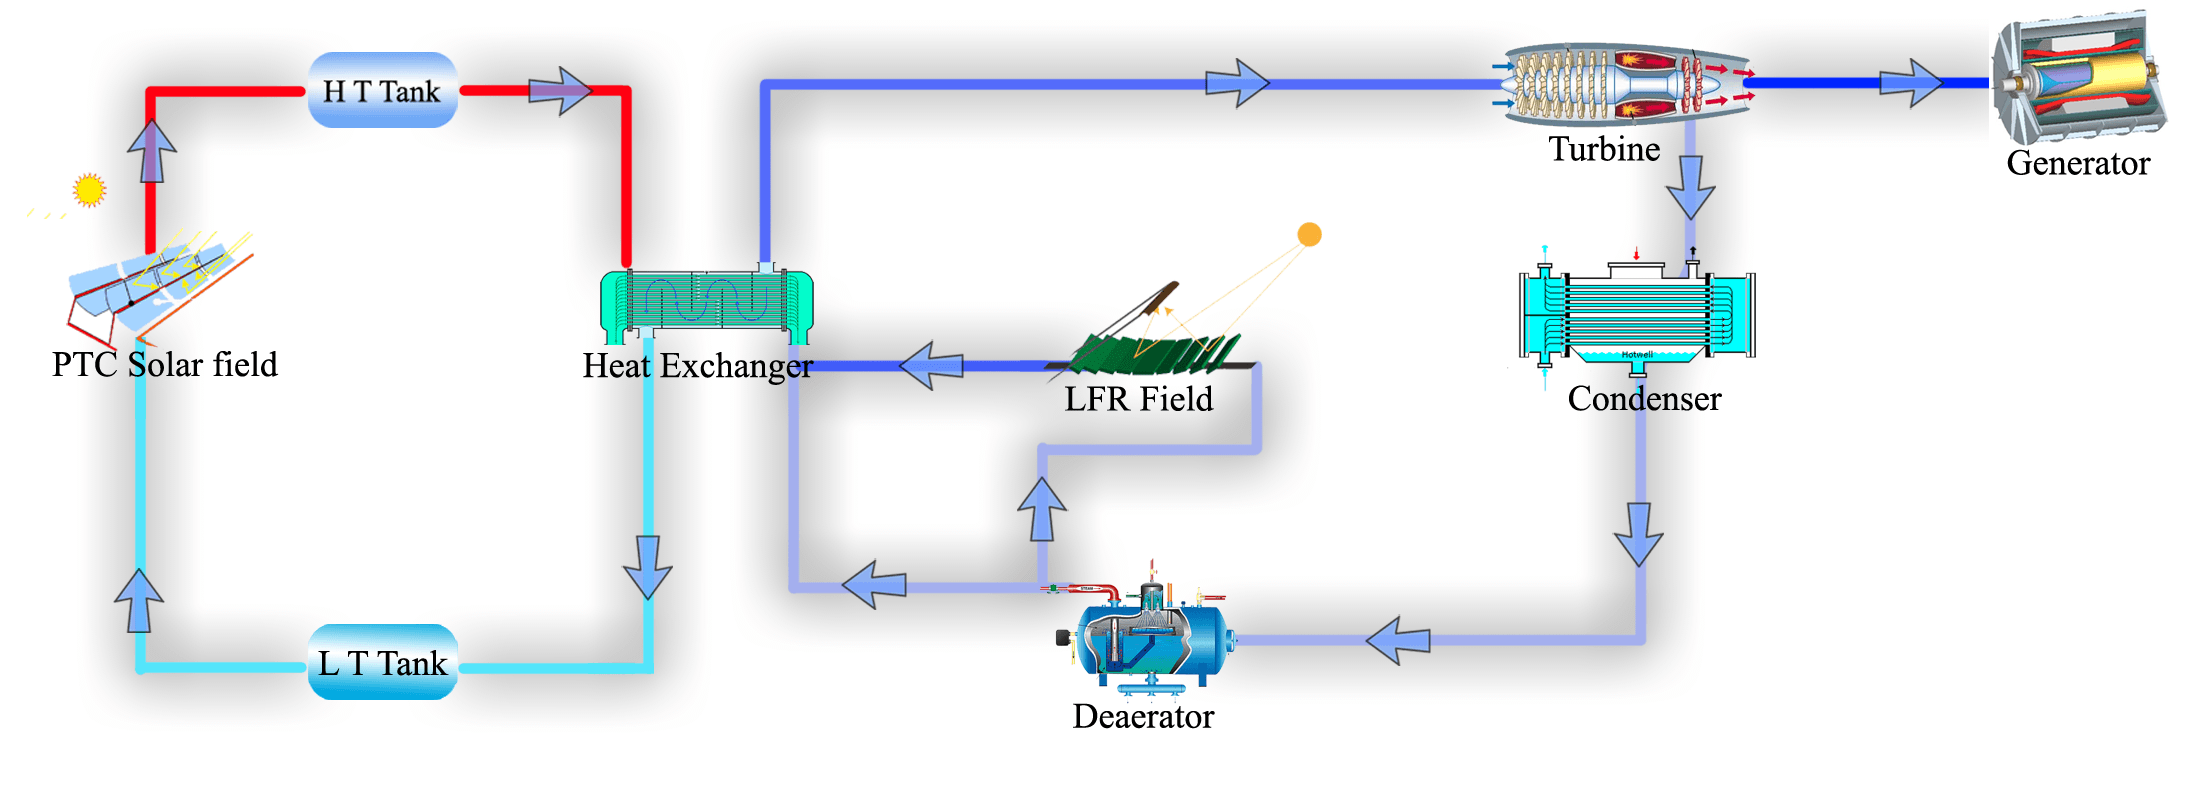 Power Plant National Solar Thermal Electrical Diagram Field And Saturated Steam From Lfr Are Integrated To Produce Superheated At 350c 42 Bar Run A Turbine Generator Electricity